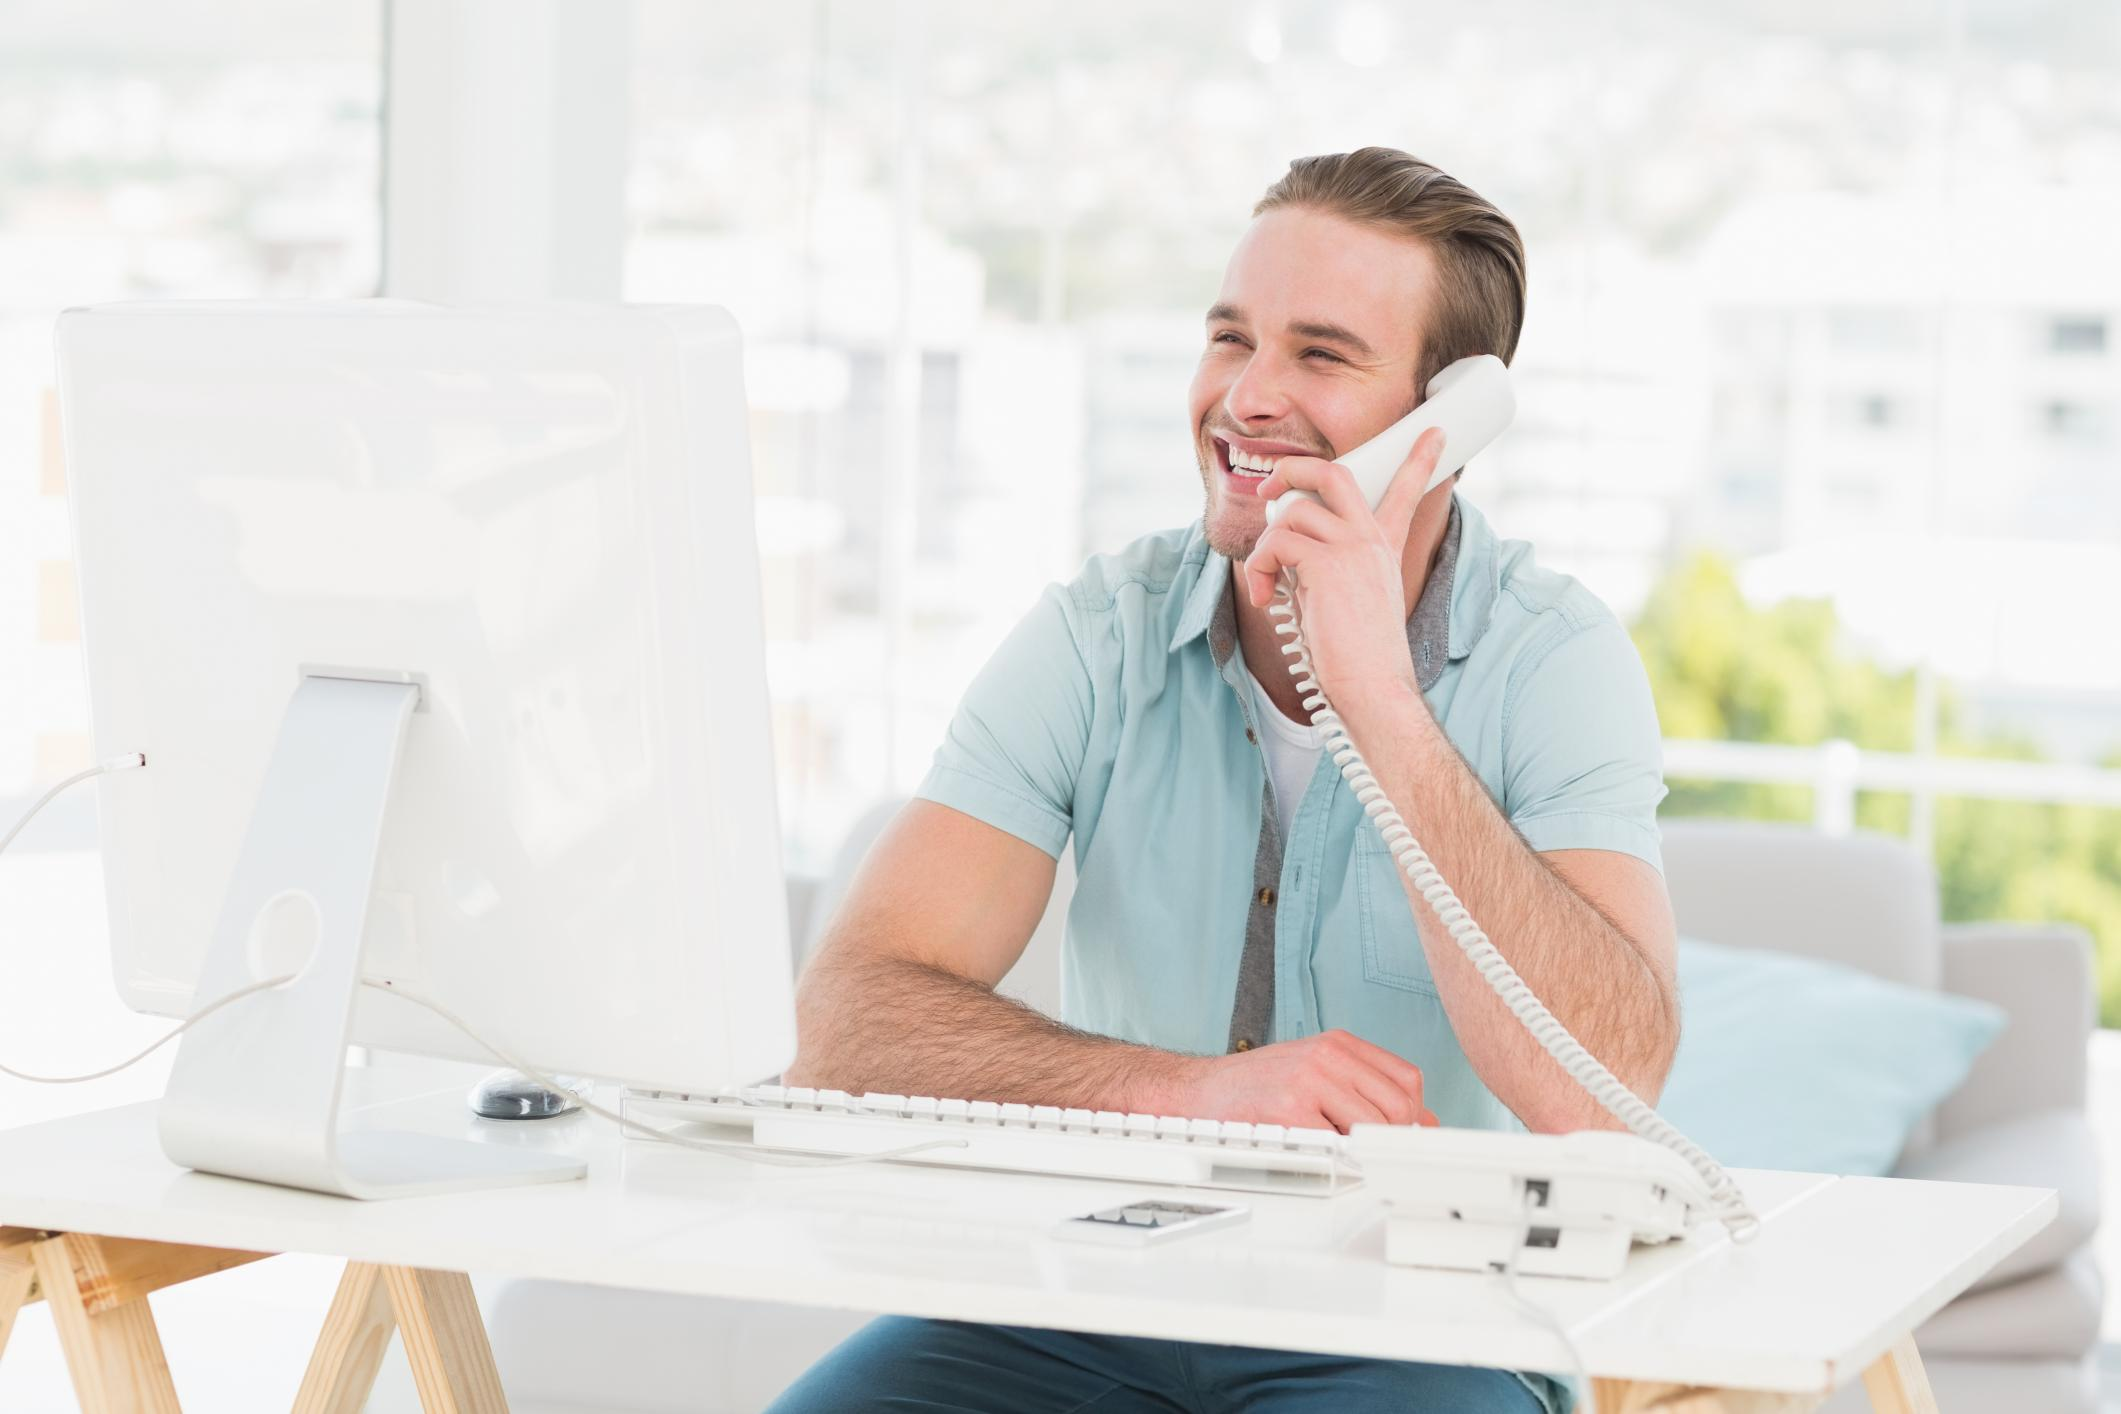 man calling on a telephone